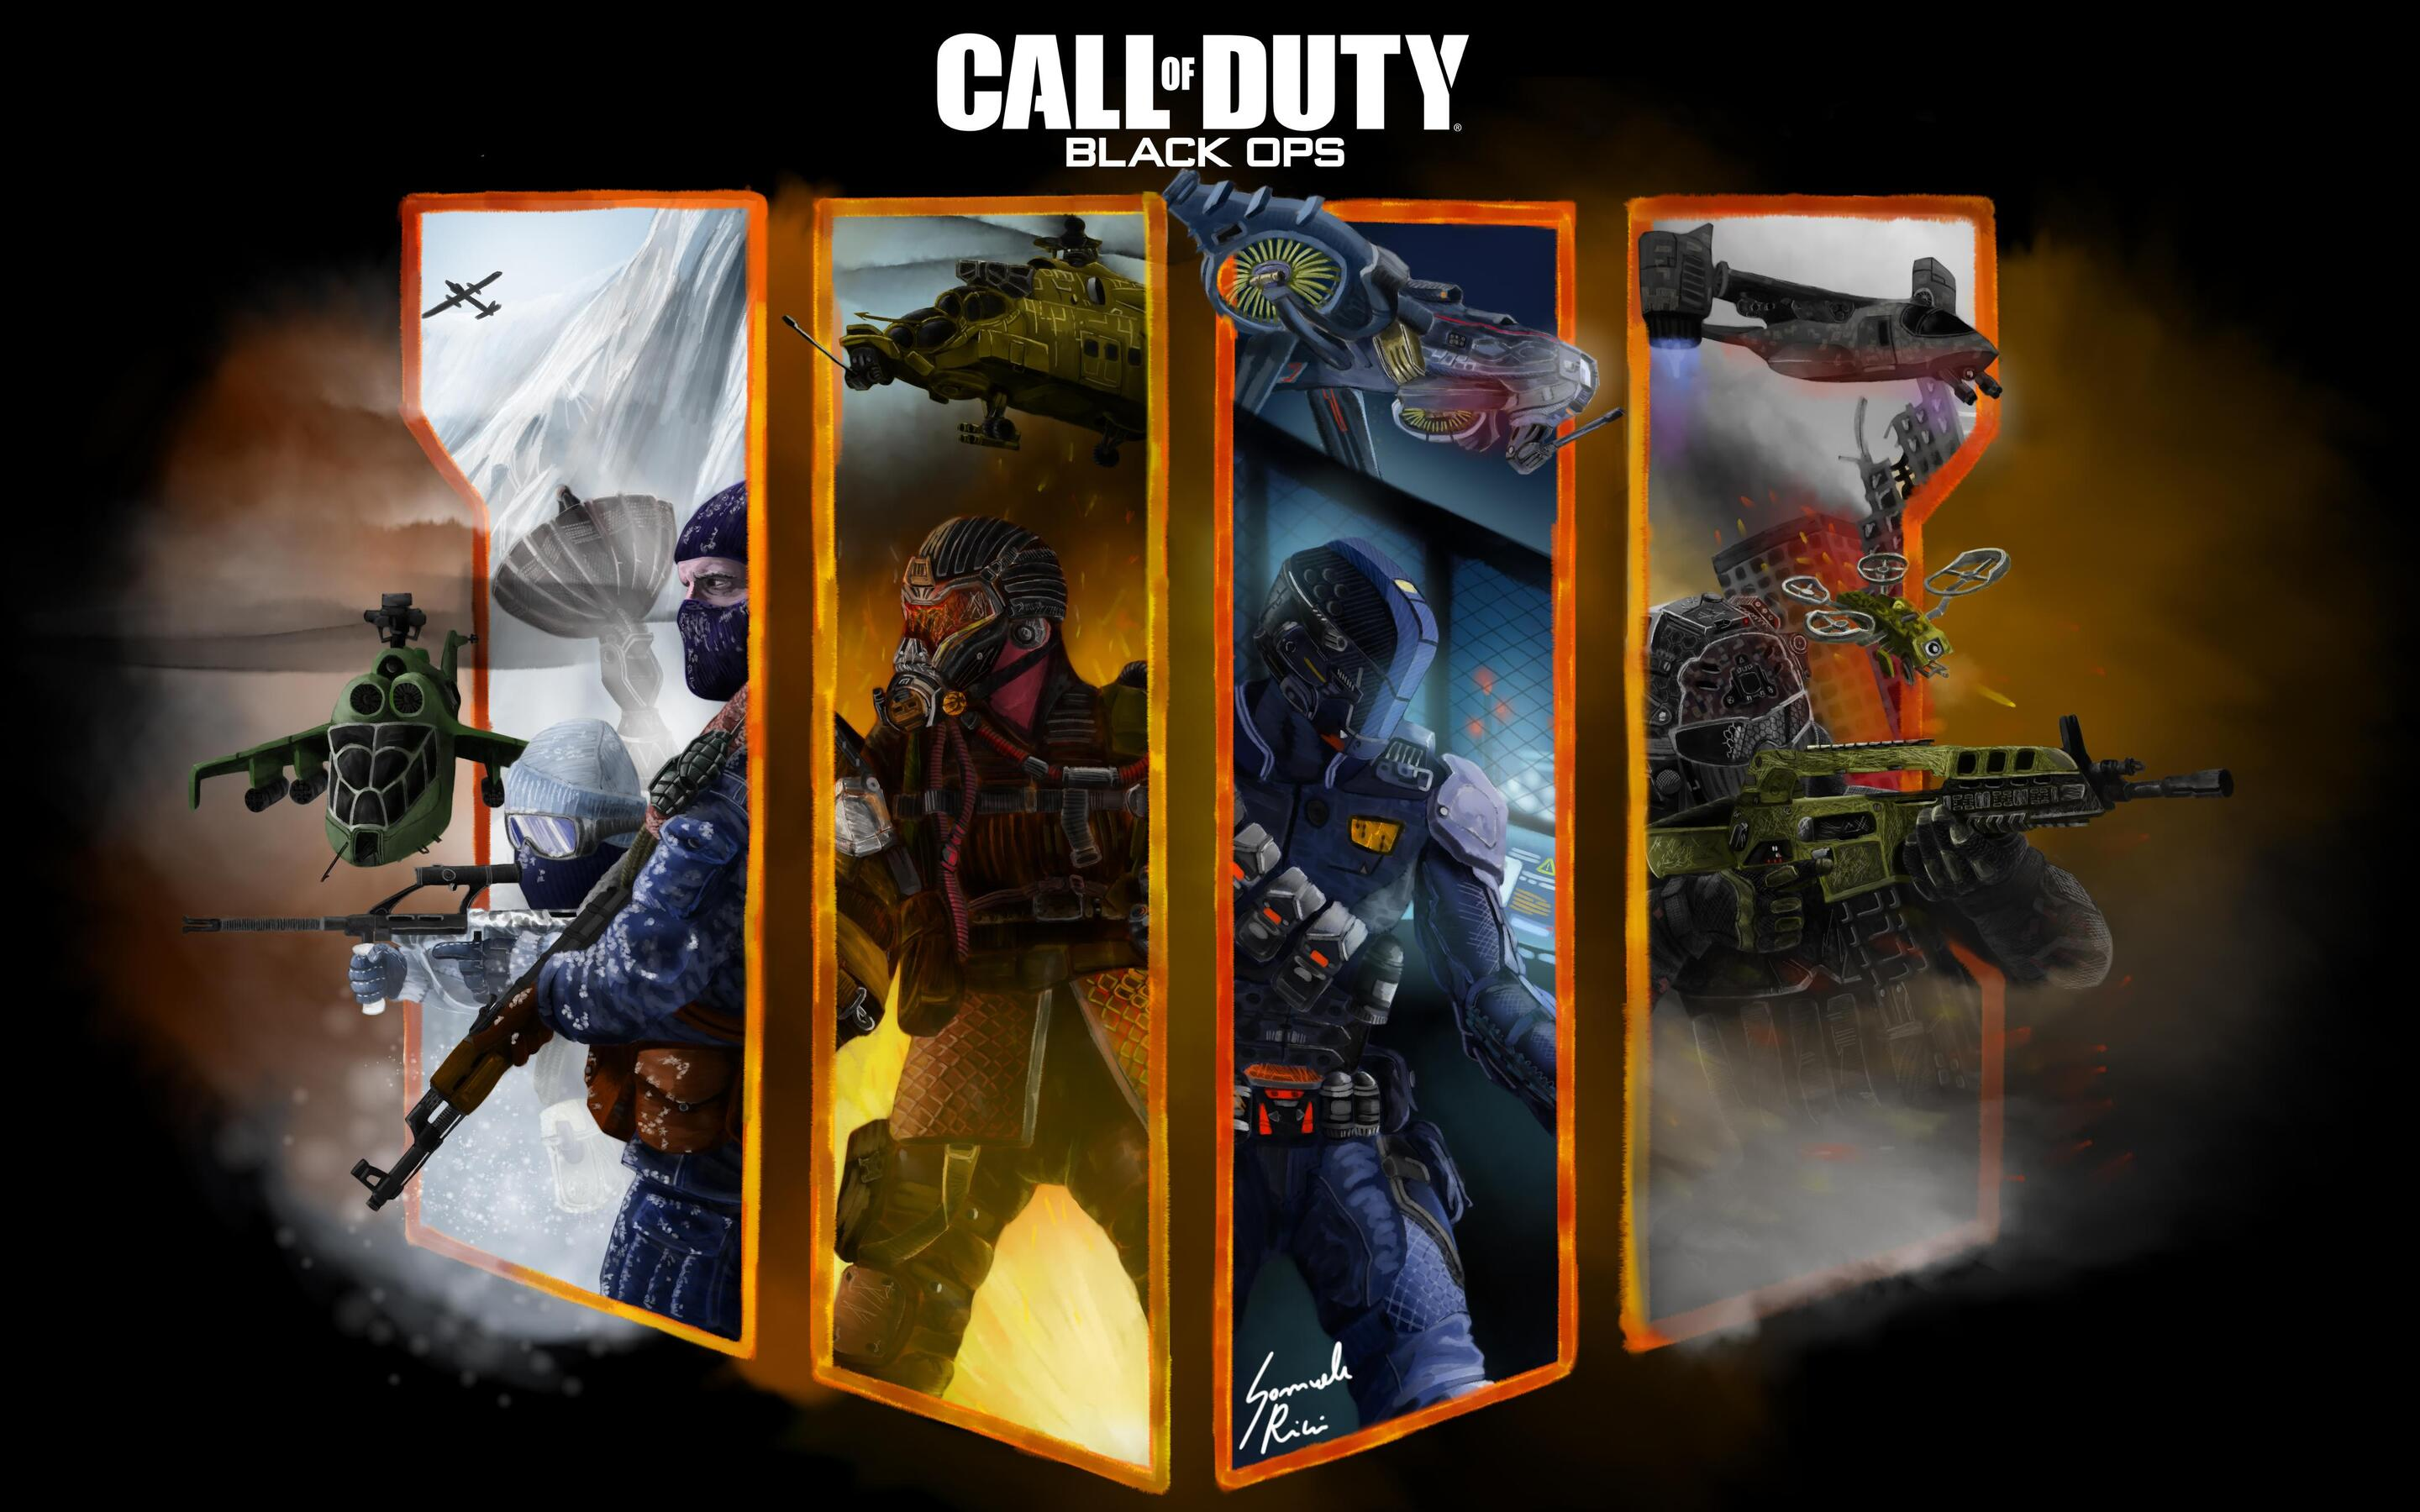 2880x1800 Call Of Duty Black Ops 4 Fan Art 4k Macbook Pro Retina Hd